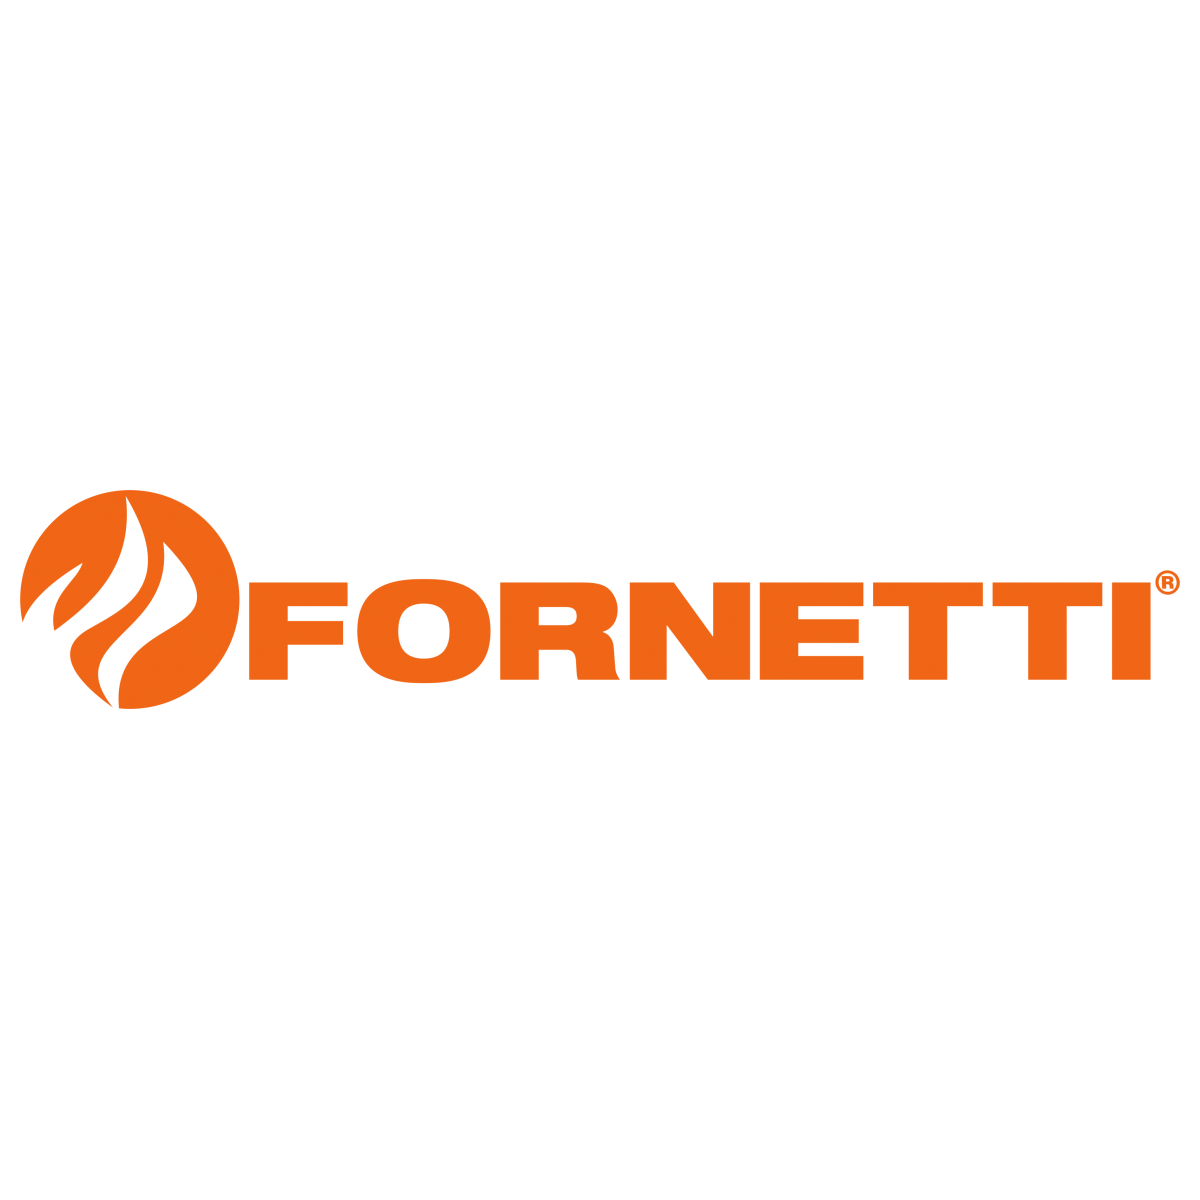 forn-1160x219-1.png